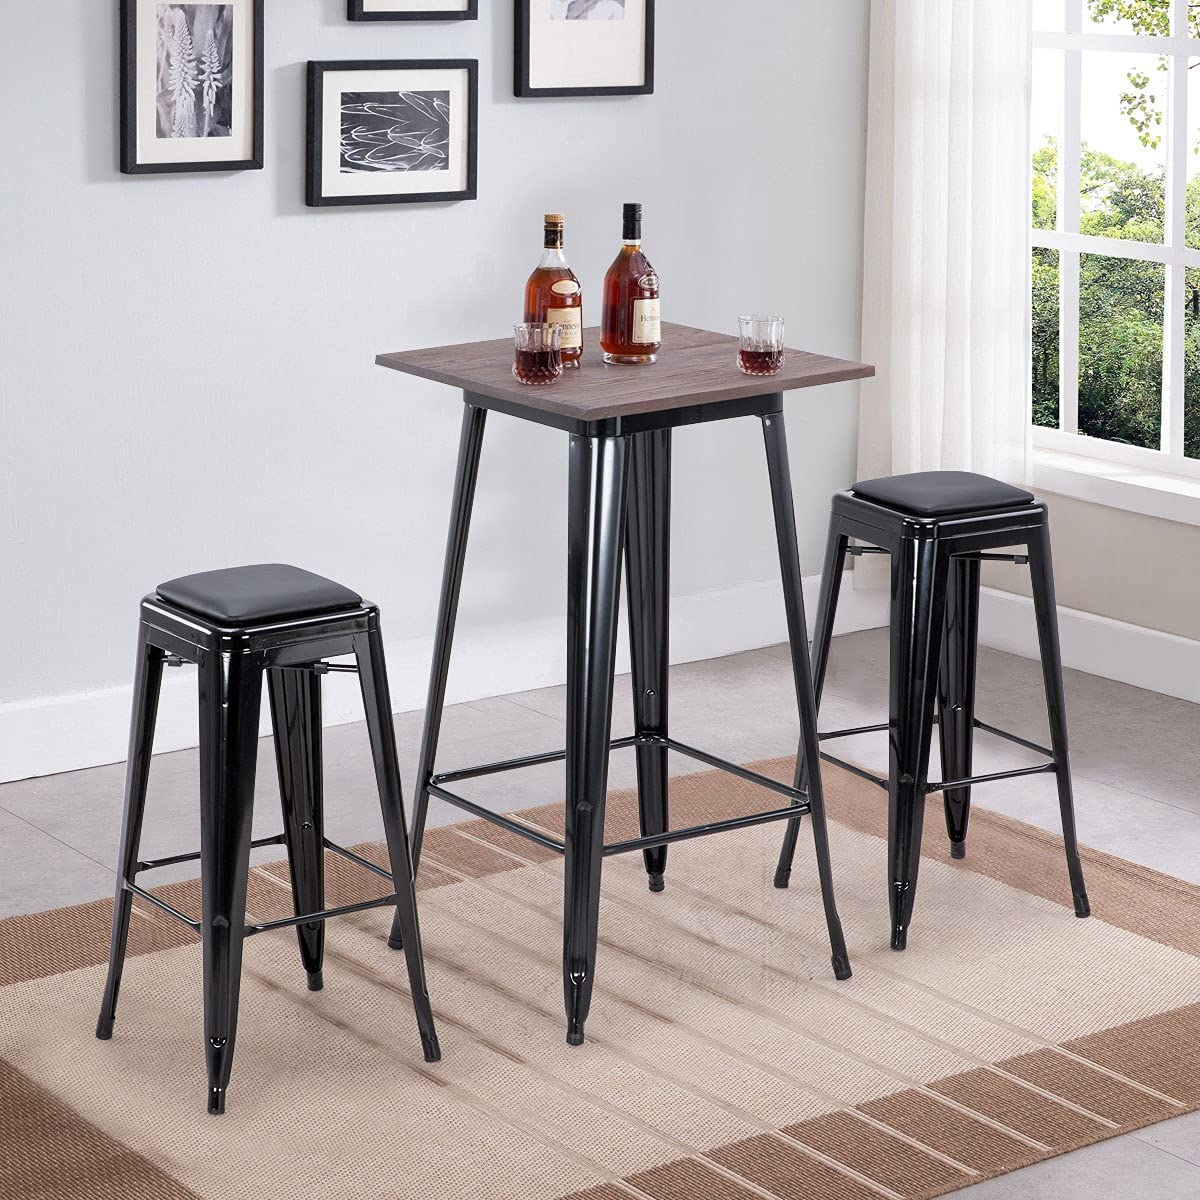 DNYKER 3 Pieces Bar Table and Pub Chairs with PU Leath Large special price Set Ranking TOP13